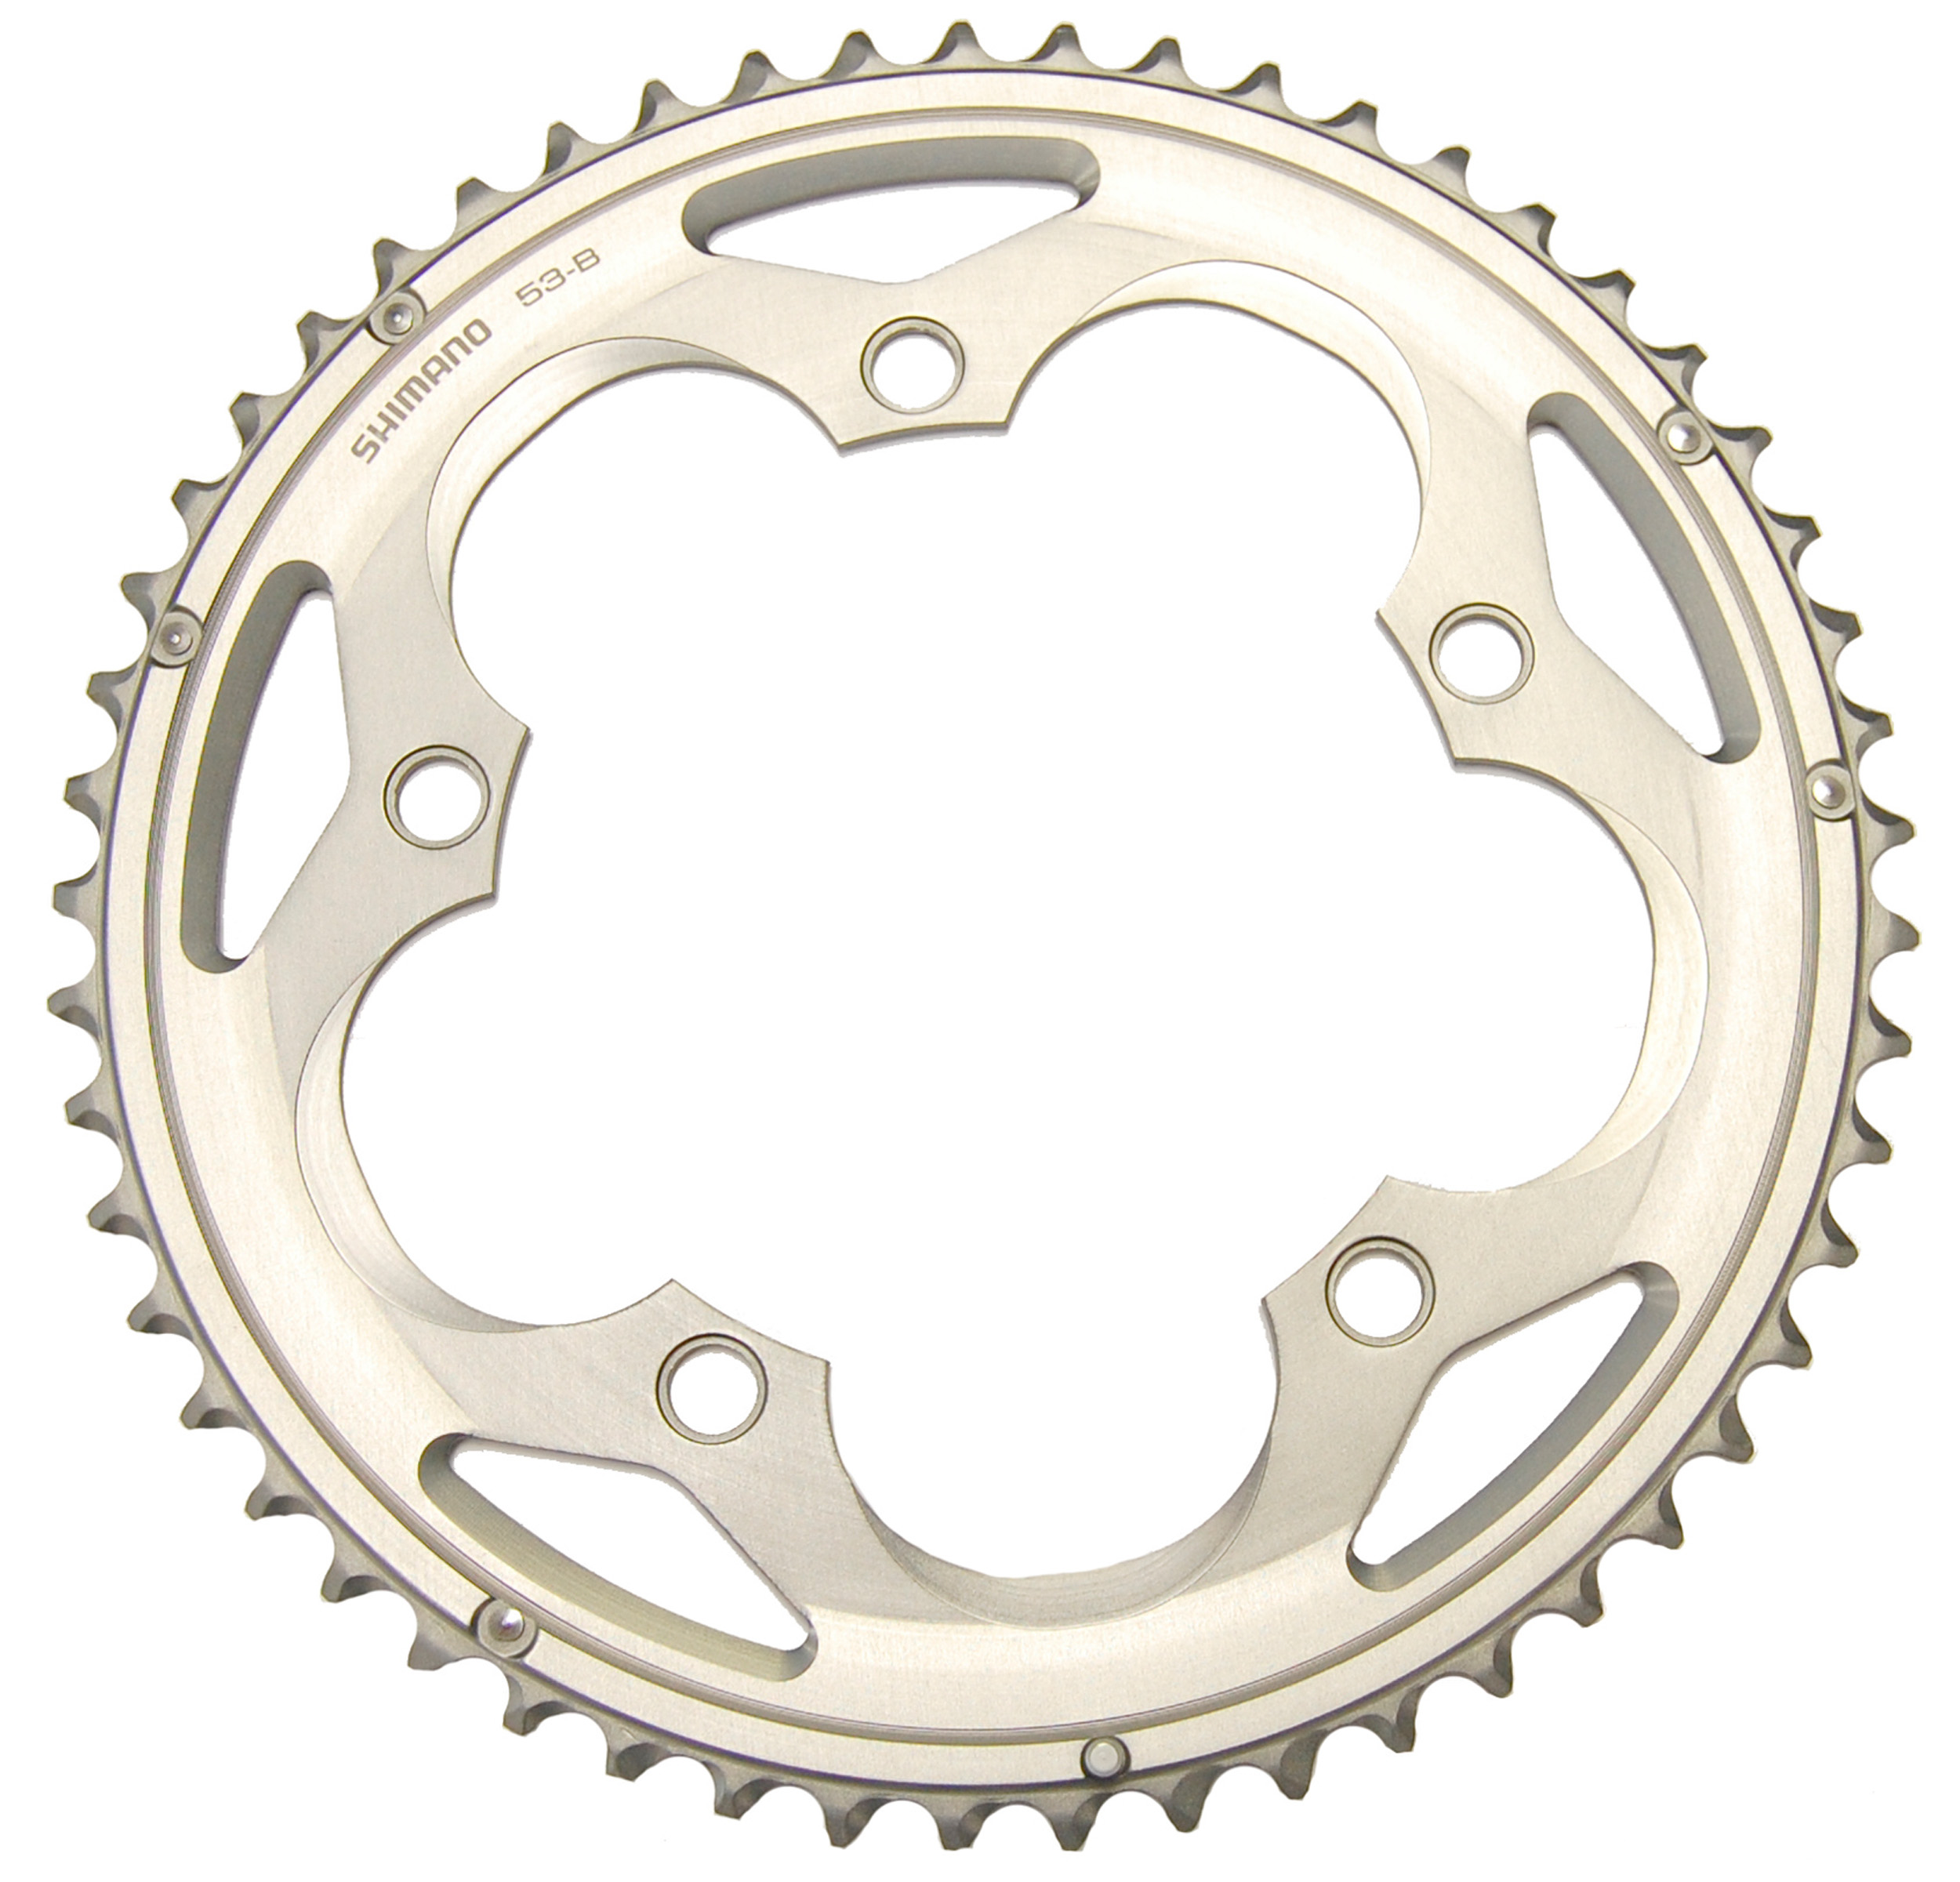 Shimano 105 5700 53t 130mm 10-Speed Chainring Silver